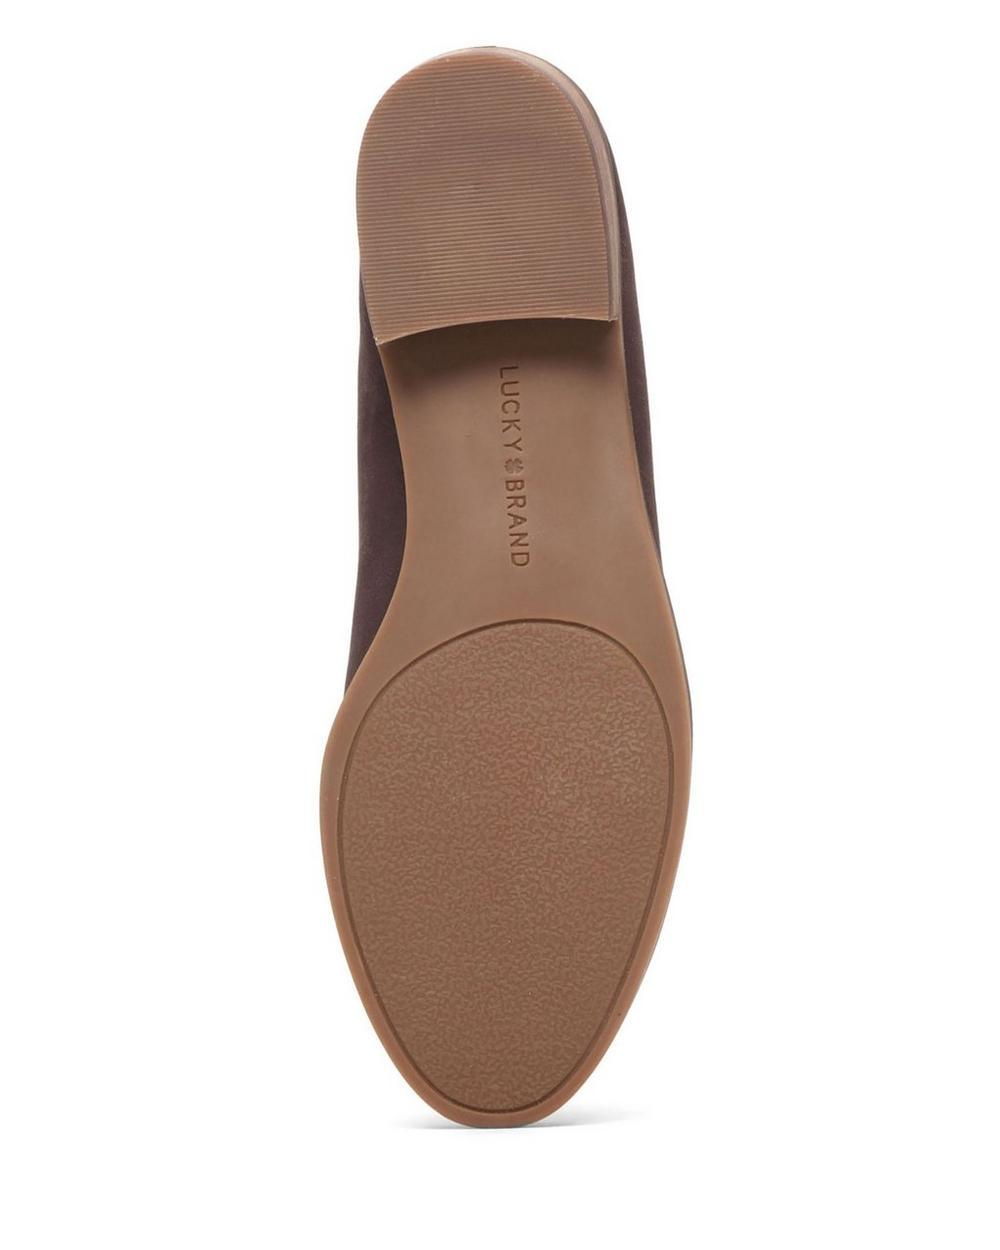 CAHILL LEATHER FLAT, image 10